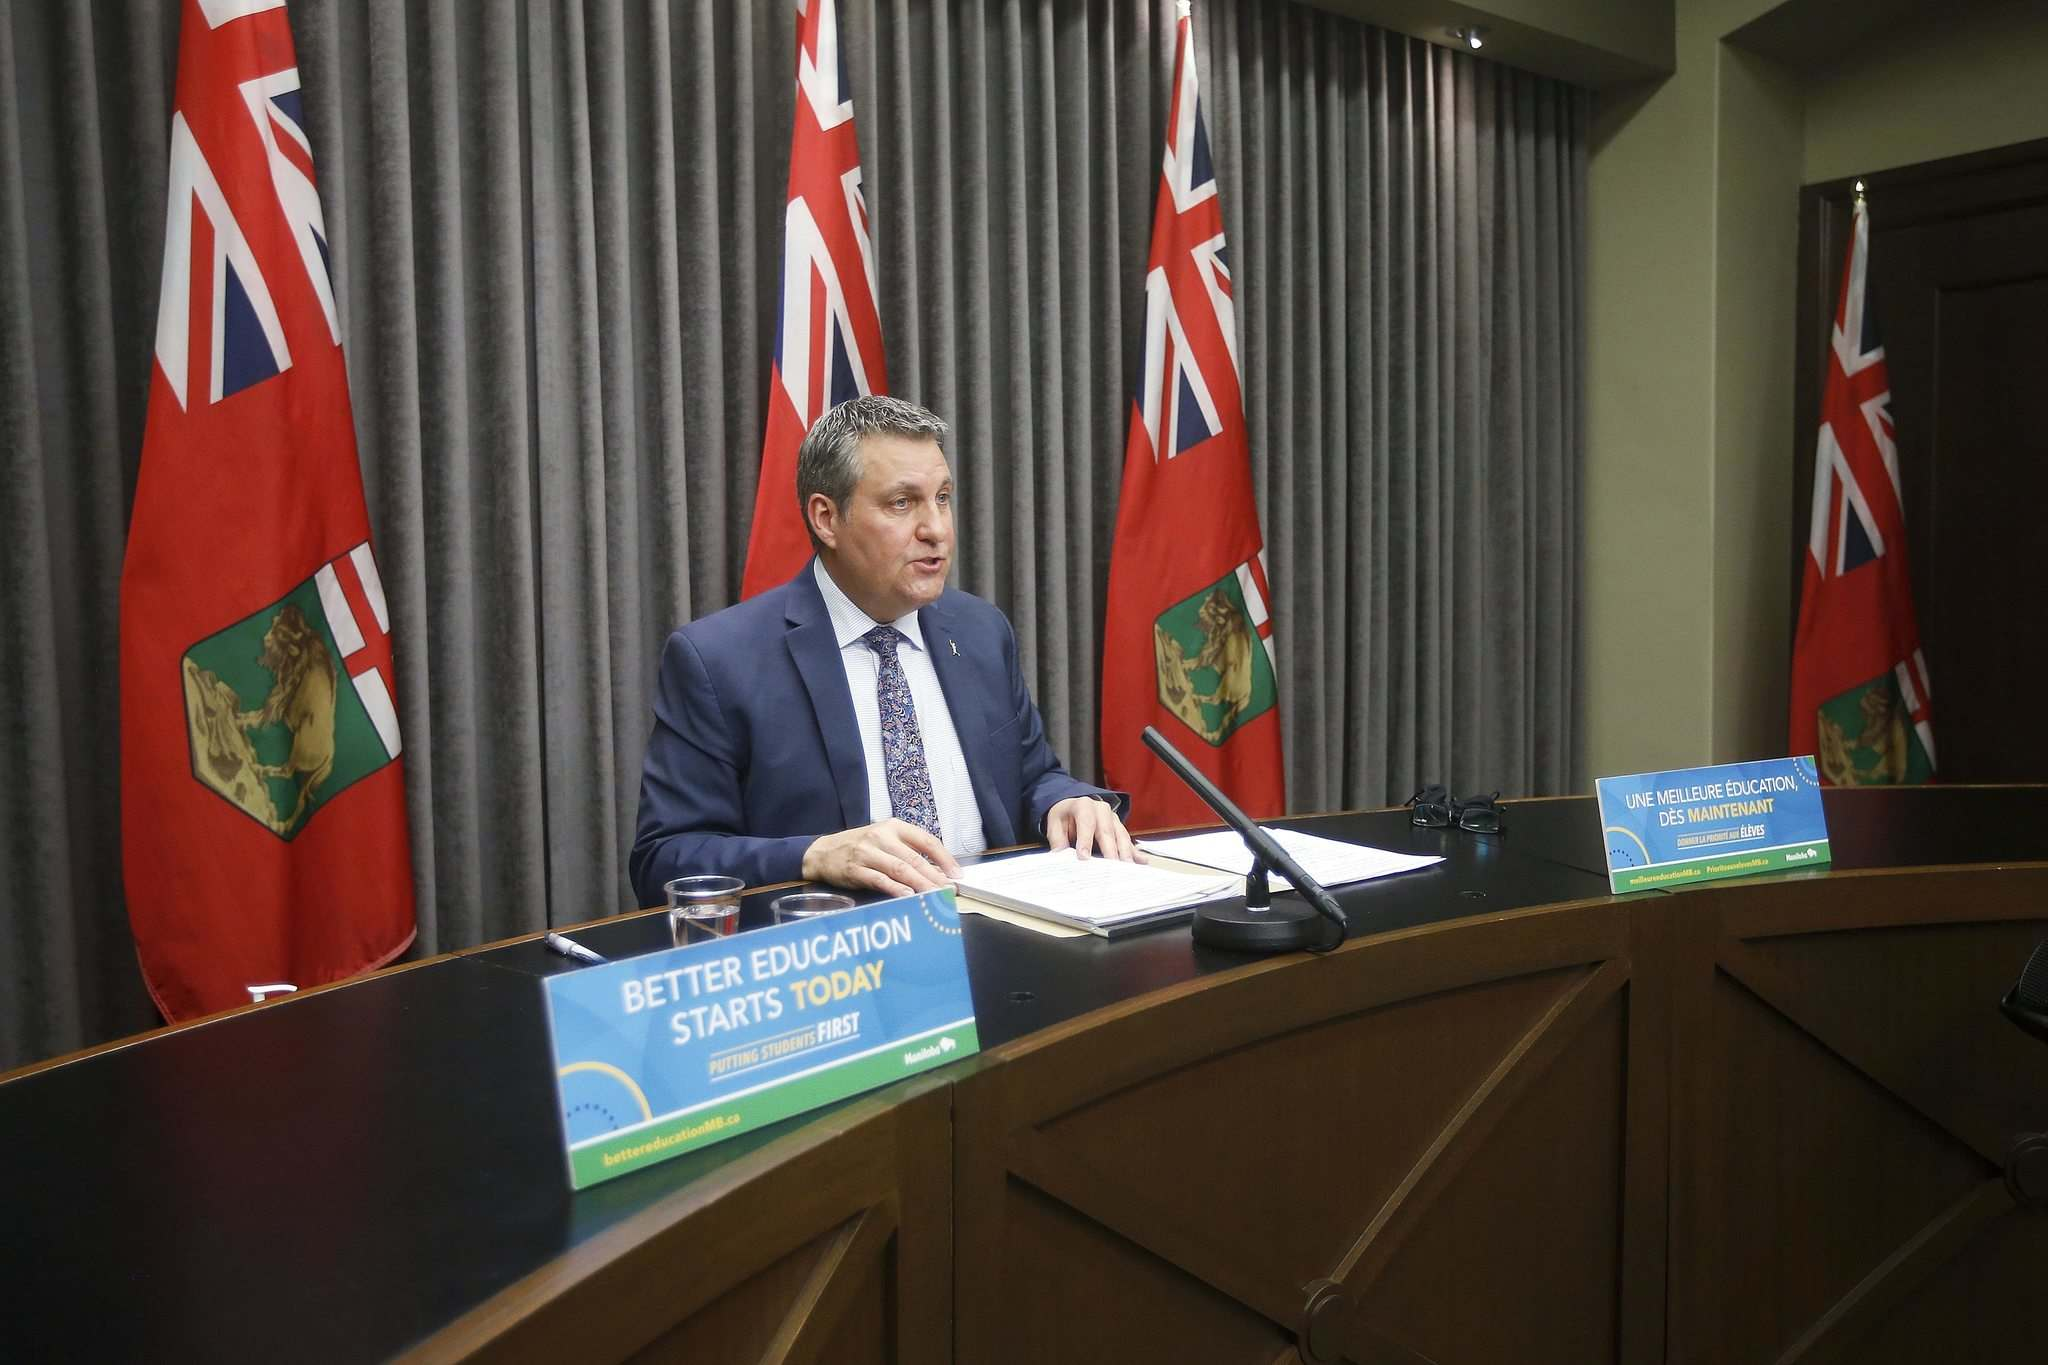 JOHN WOODS / WINNIPEG FREE PRESS</p><p>Minister of Education Cliff Cullen speaks at a press conference about Bill 64 on March 15 at the Manitoba Legislature.</p>